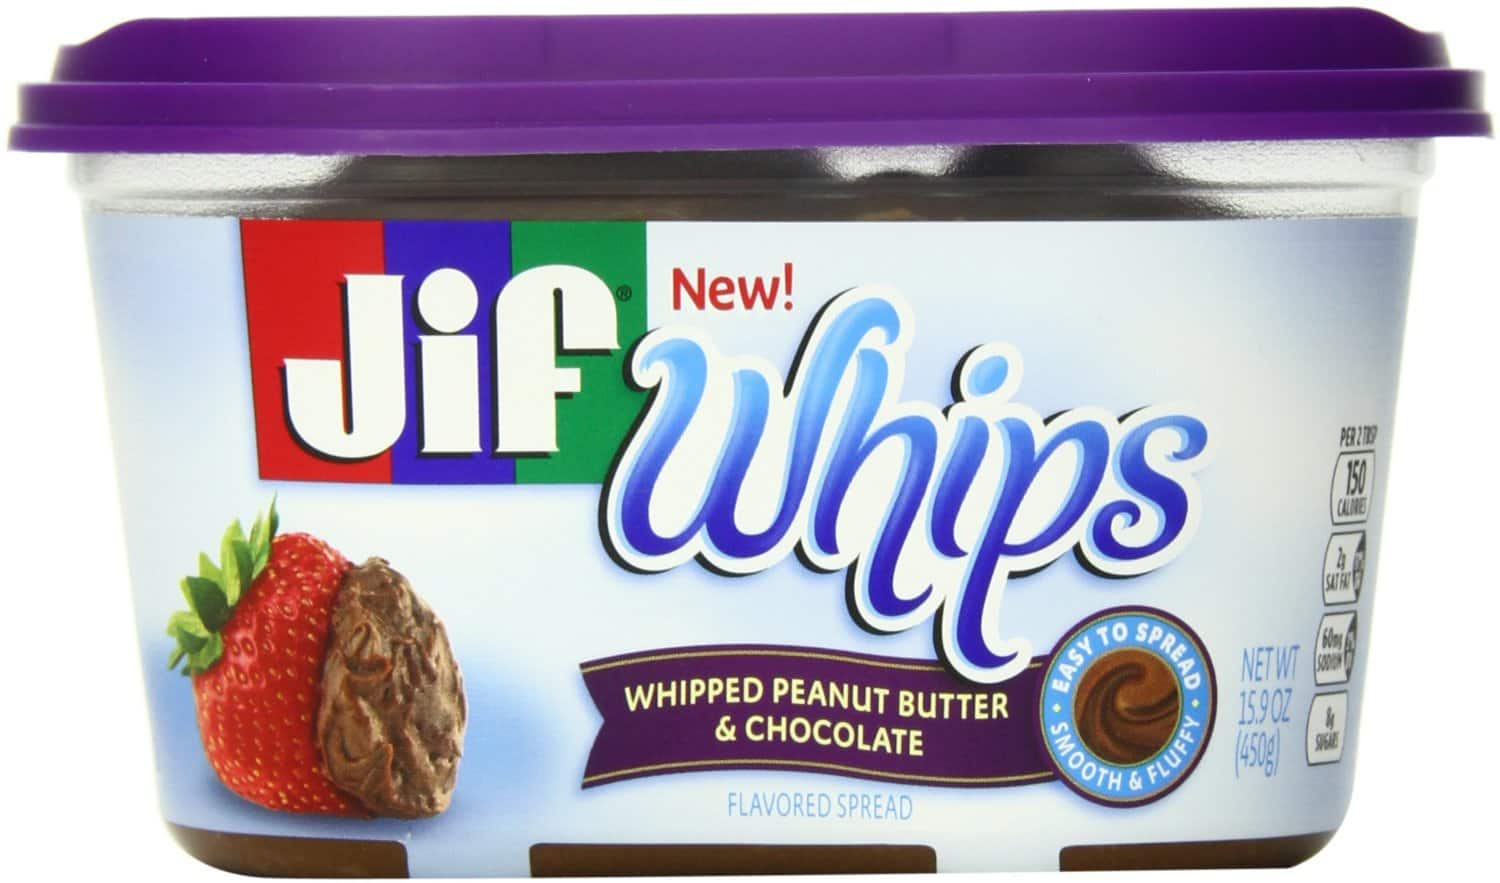 Jif Whipped Peanut Butter and Chocolate Flavored Spread $2.85 or Less S&S @ $2.54 15% 5+ Amazon S&S w/o Chocolate $2.67 or less